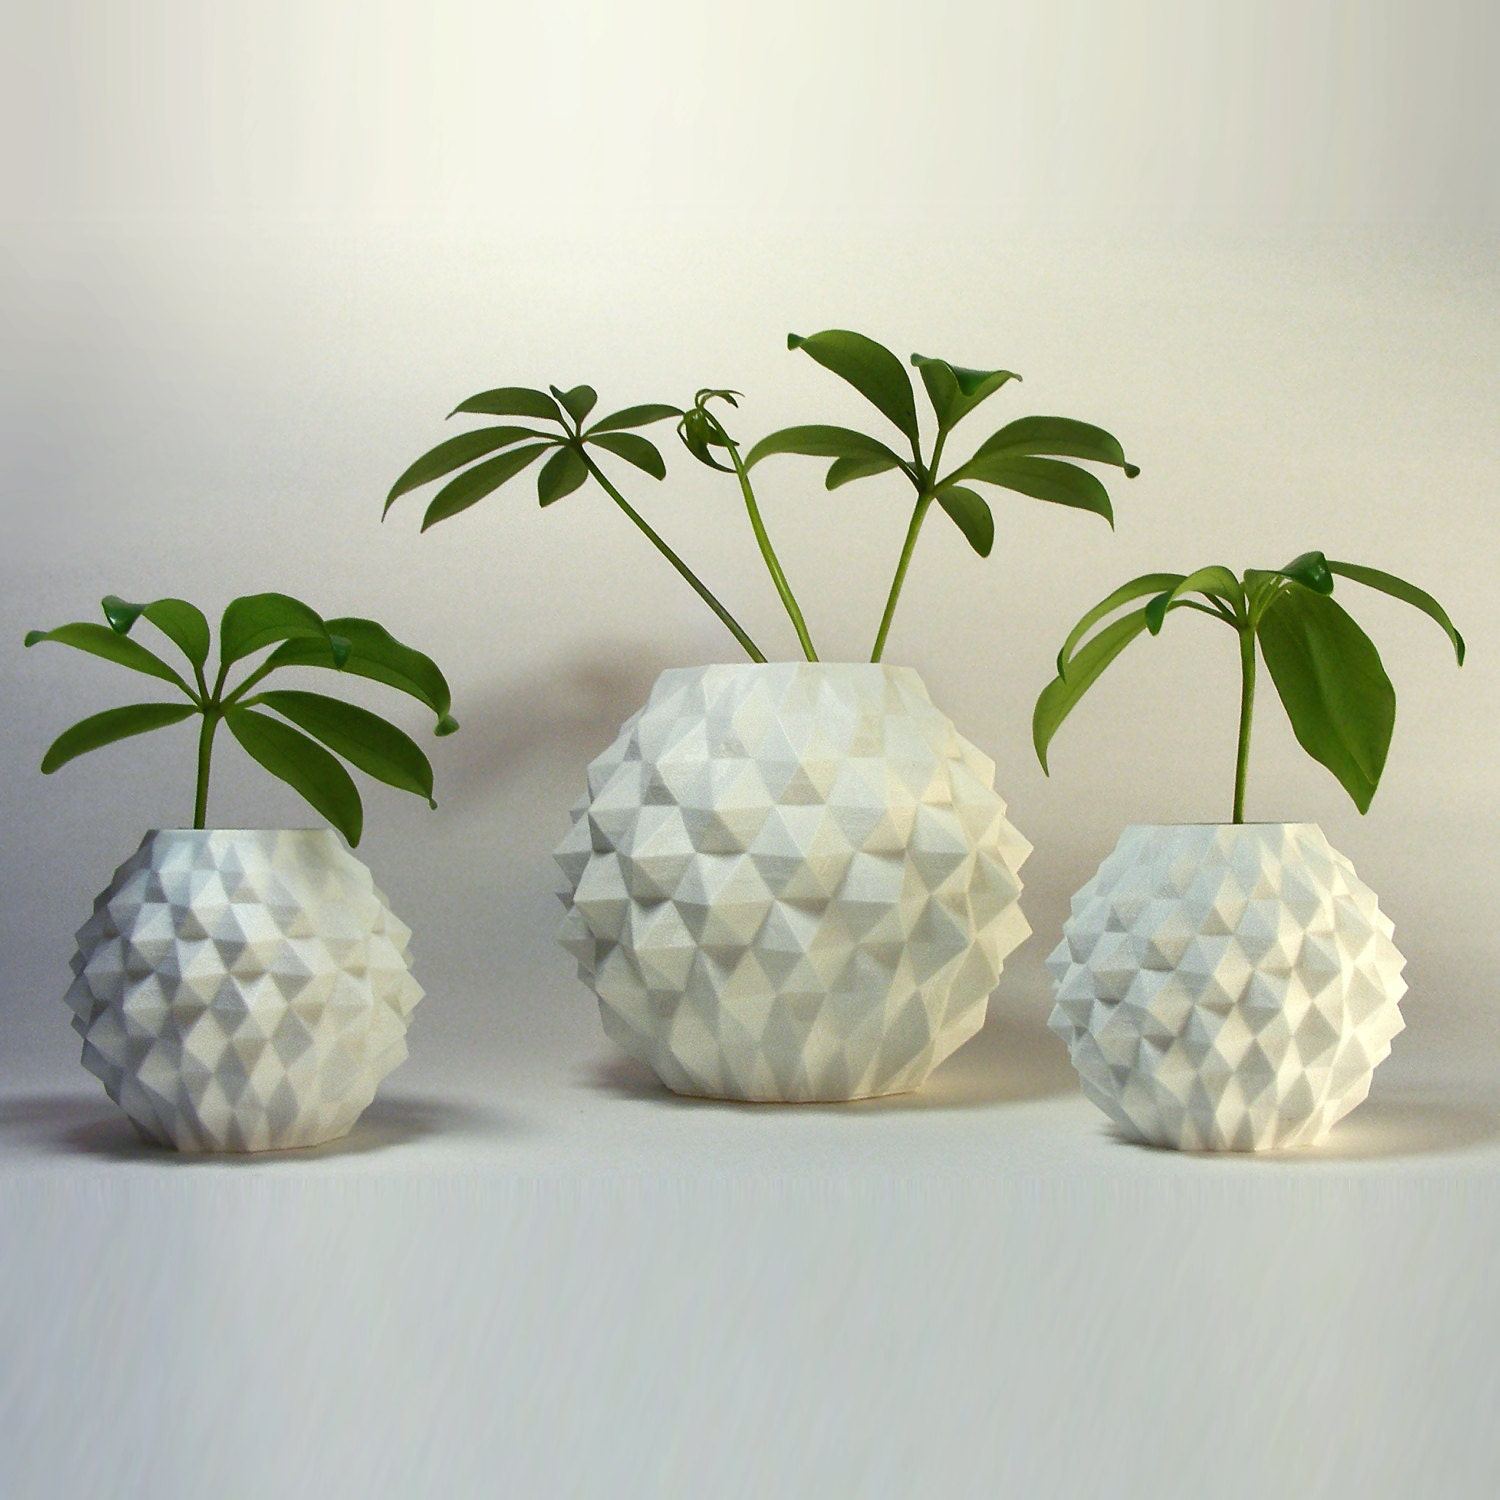 Gift set of indoor planters round geometric decor by meshcloud for Design indoor plant pots uk